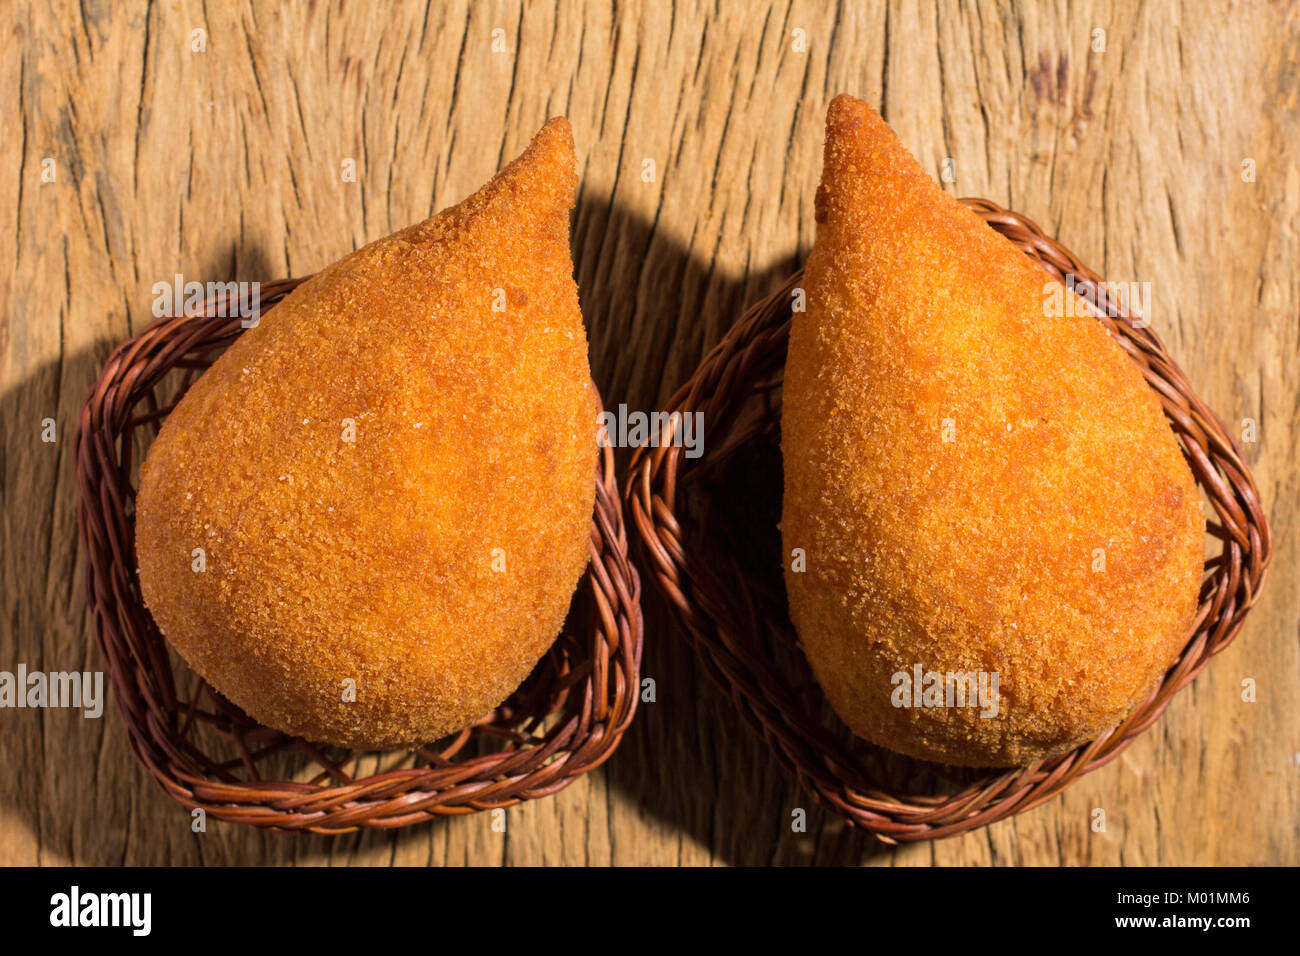 Deep fried chicken finger food known as Coxinha in Brazil. Brazilians eat as fast food alternative or at parties. - Stock Image